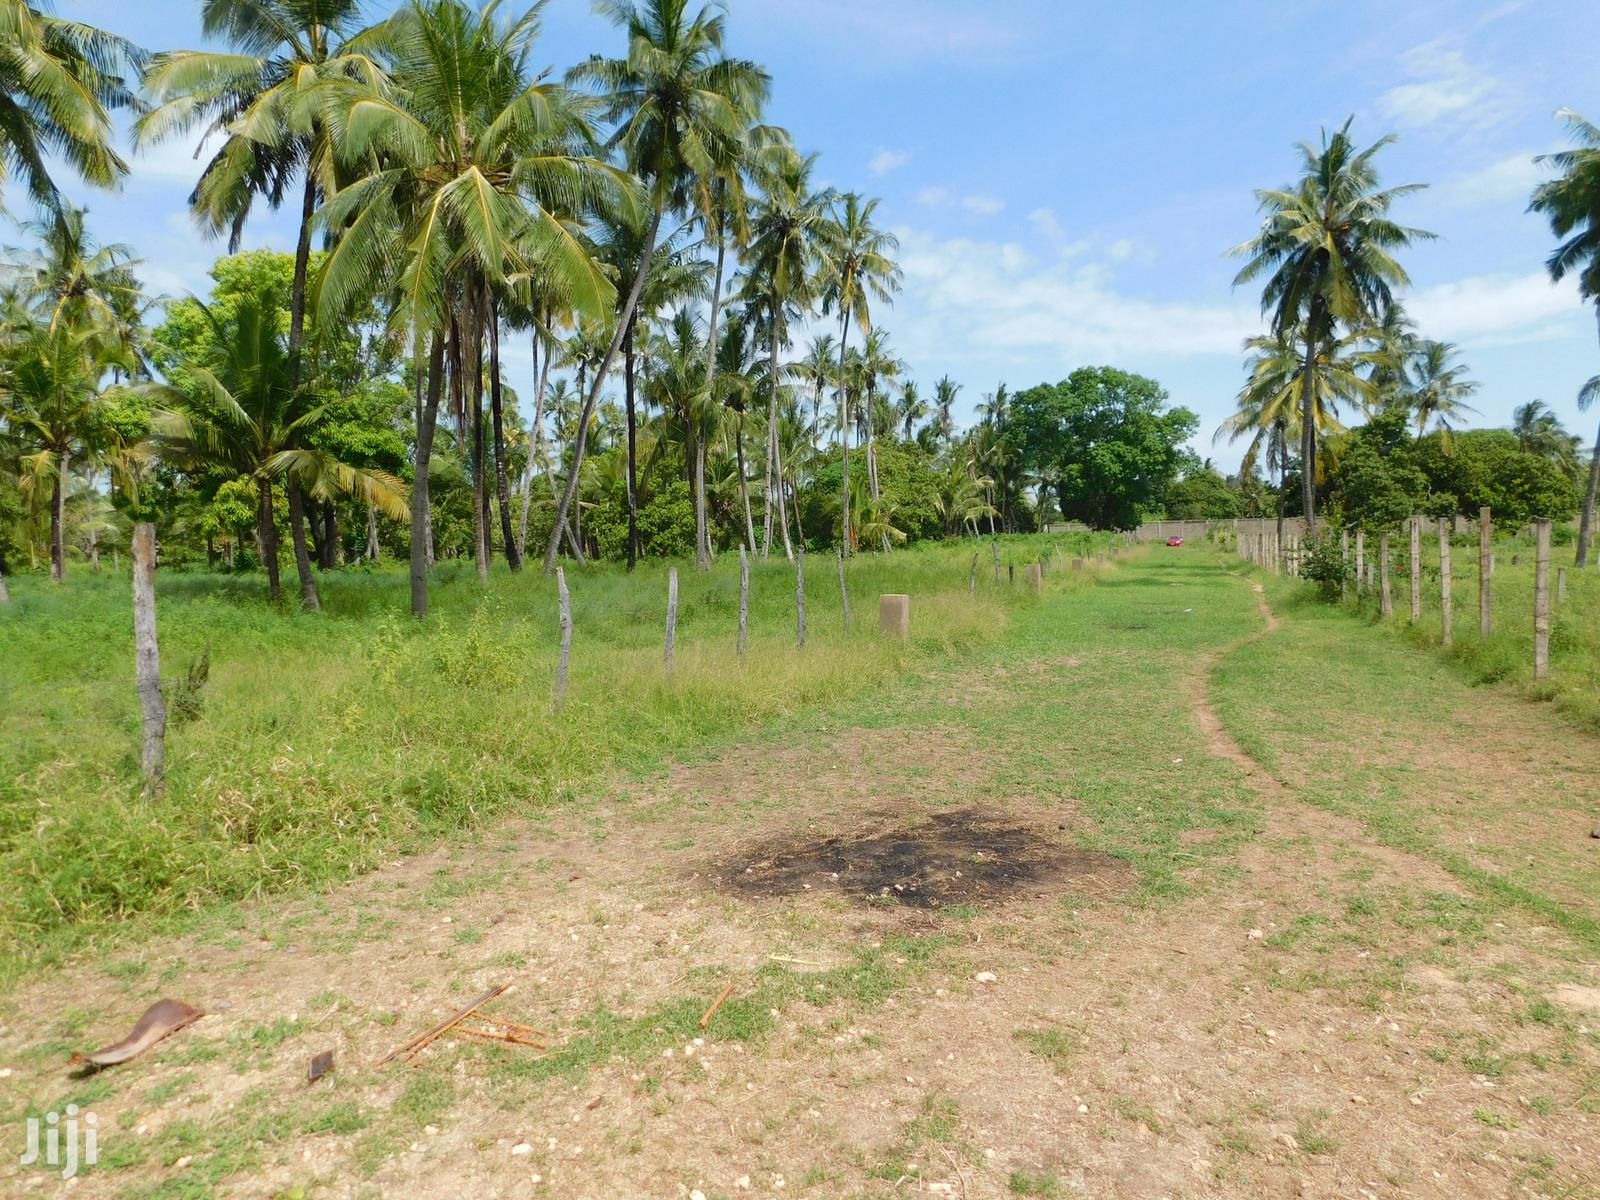 Quarter Acre of Land on Sale Near Vipingo Main Gate-Benford Homes | Land & Plots For Sale for sale in Nyali, Mombasa, Kenya